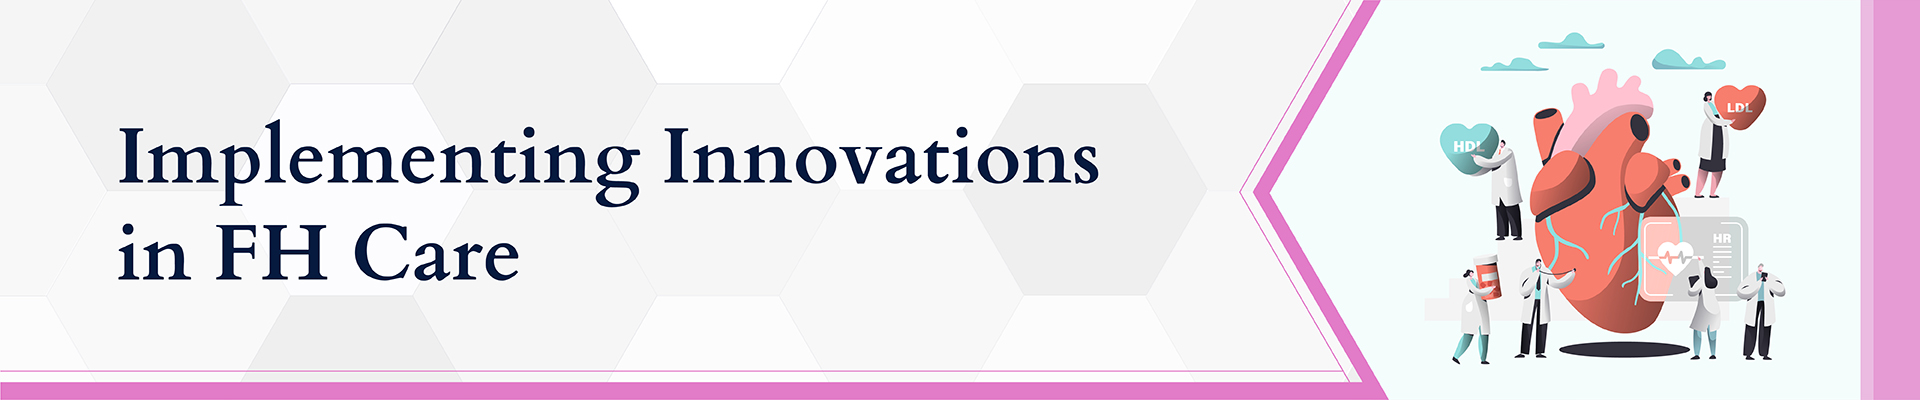 Session 6 - Implementing Innovations in FH Care